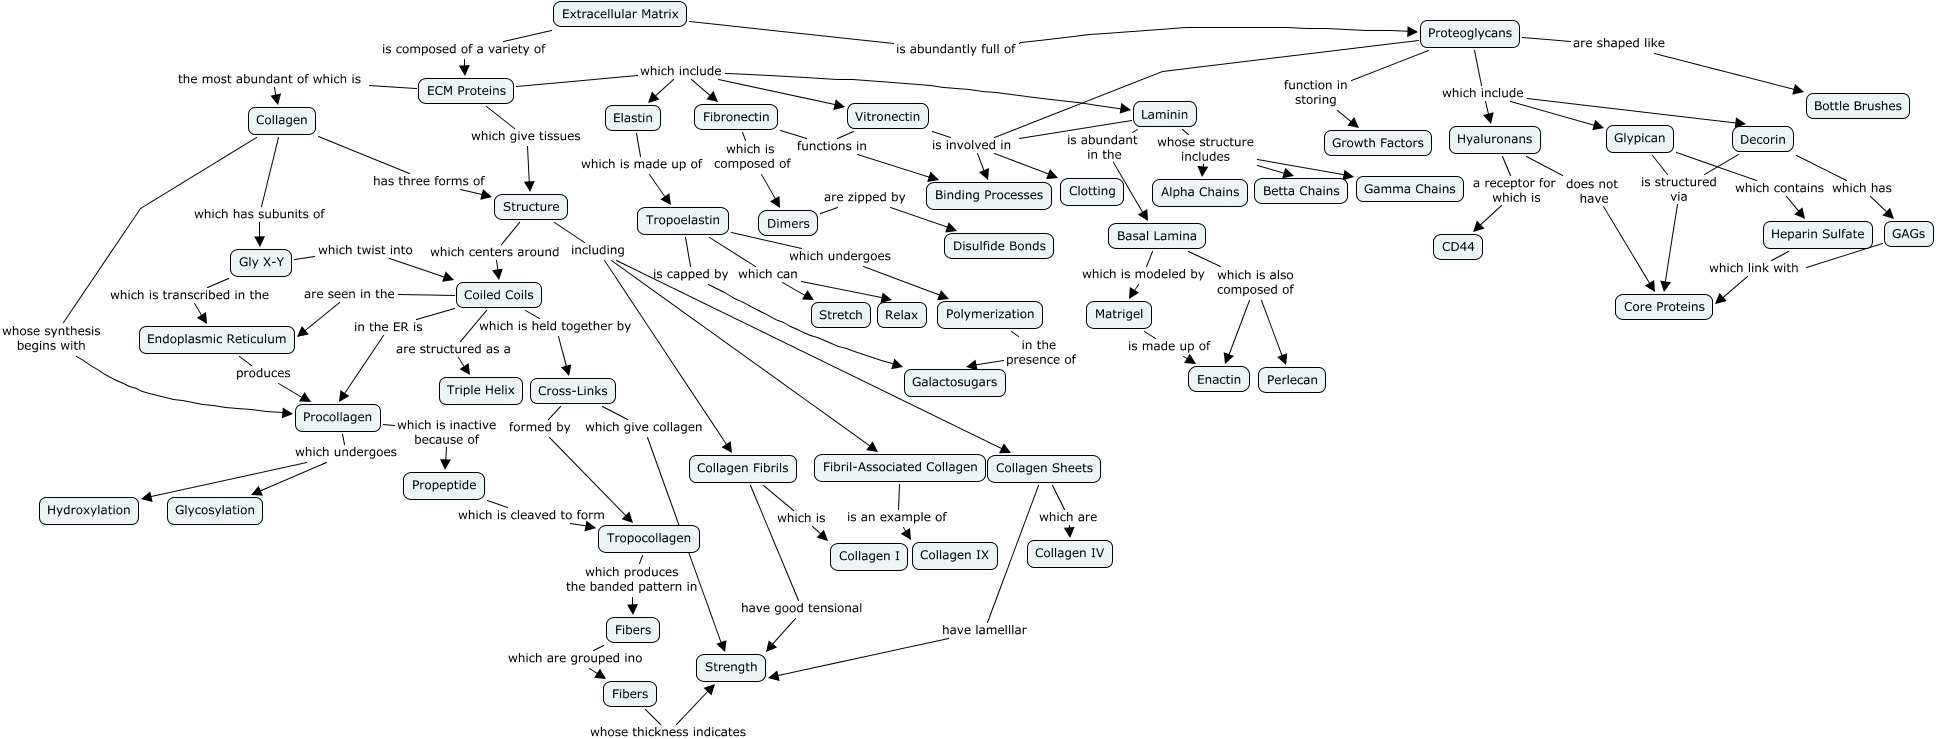 ECM Protein Concept Map   What are the key proteins present in the